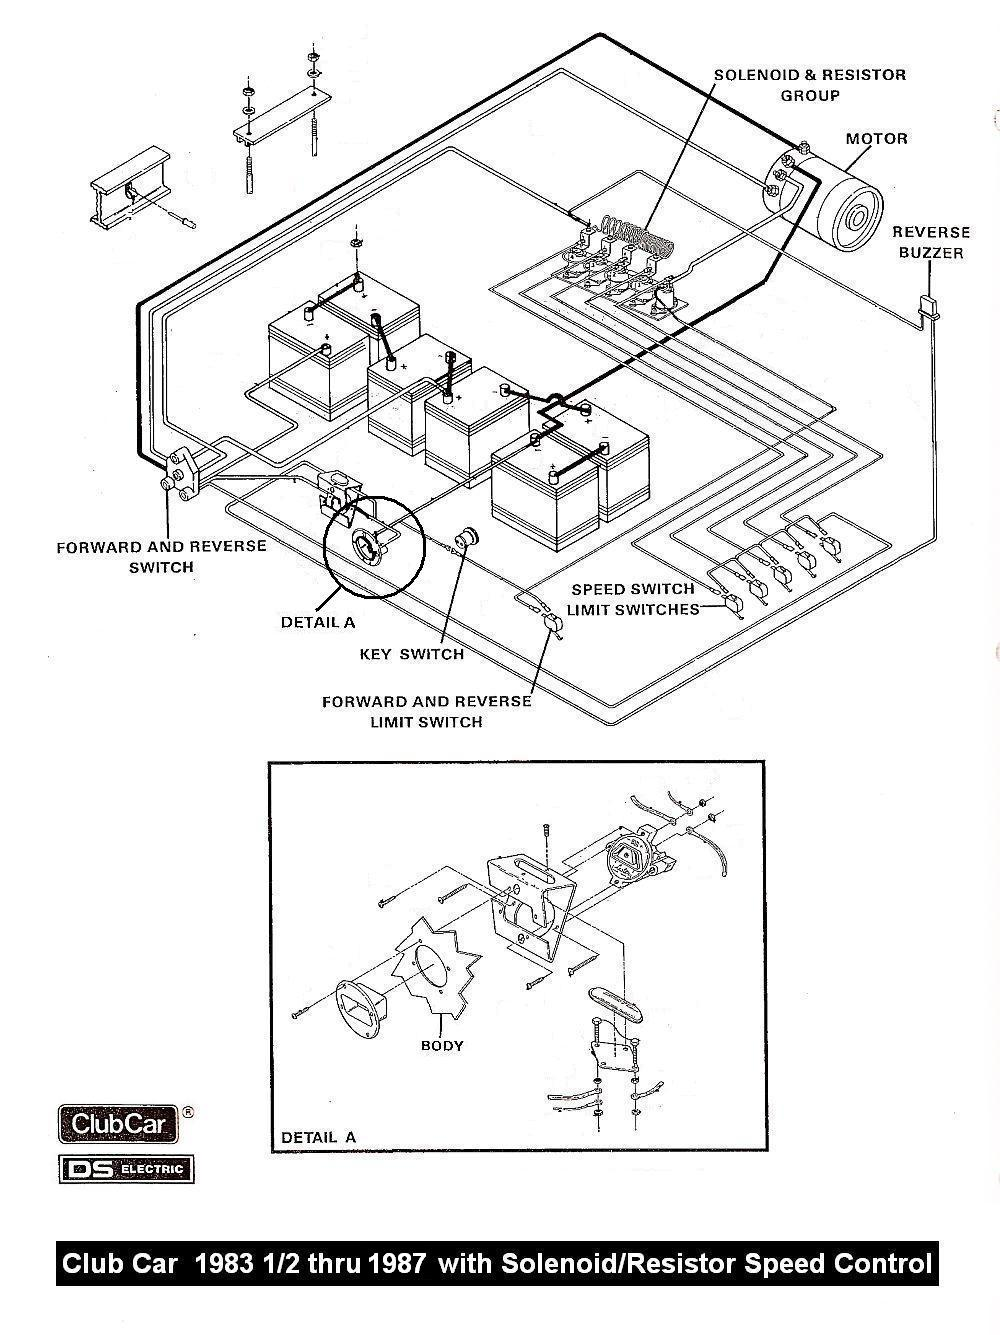 wiring diagram for ez go golf cart battery with 924 Electric Club Car Wiring Diagrams on 48 Volt Golf Cart Wiring Diagram additionally Taylor Dunn Electric Golf Cart Wiring Diagram further 5cjym 2005 Ds Gas Club Car Relatively Low Hours I M further Ez Go Wiring Diagram For 94 in addition 1992 Ezgo Gas Golf Cart Wiring Diagram Wiring Diagrams.